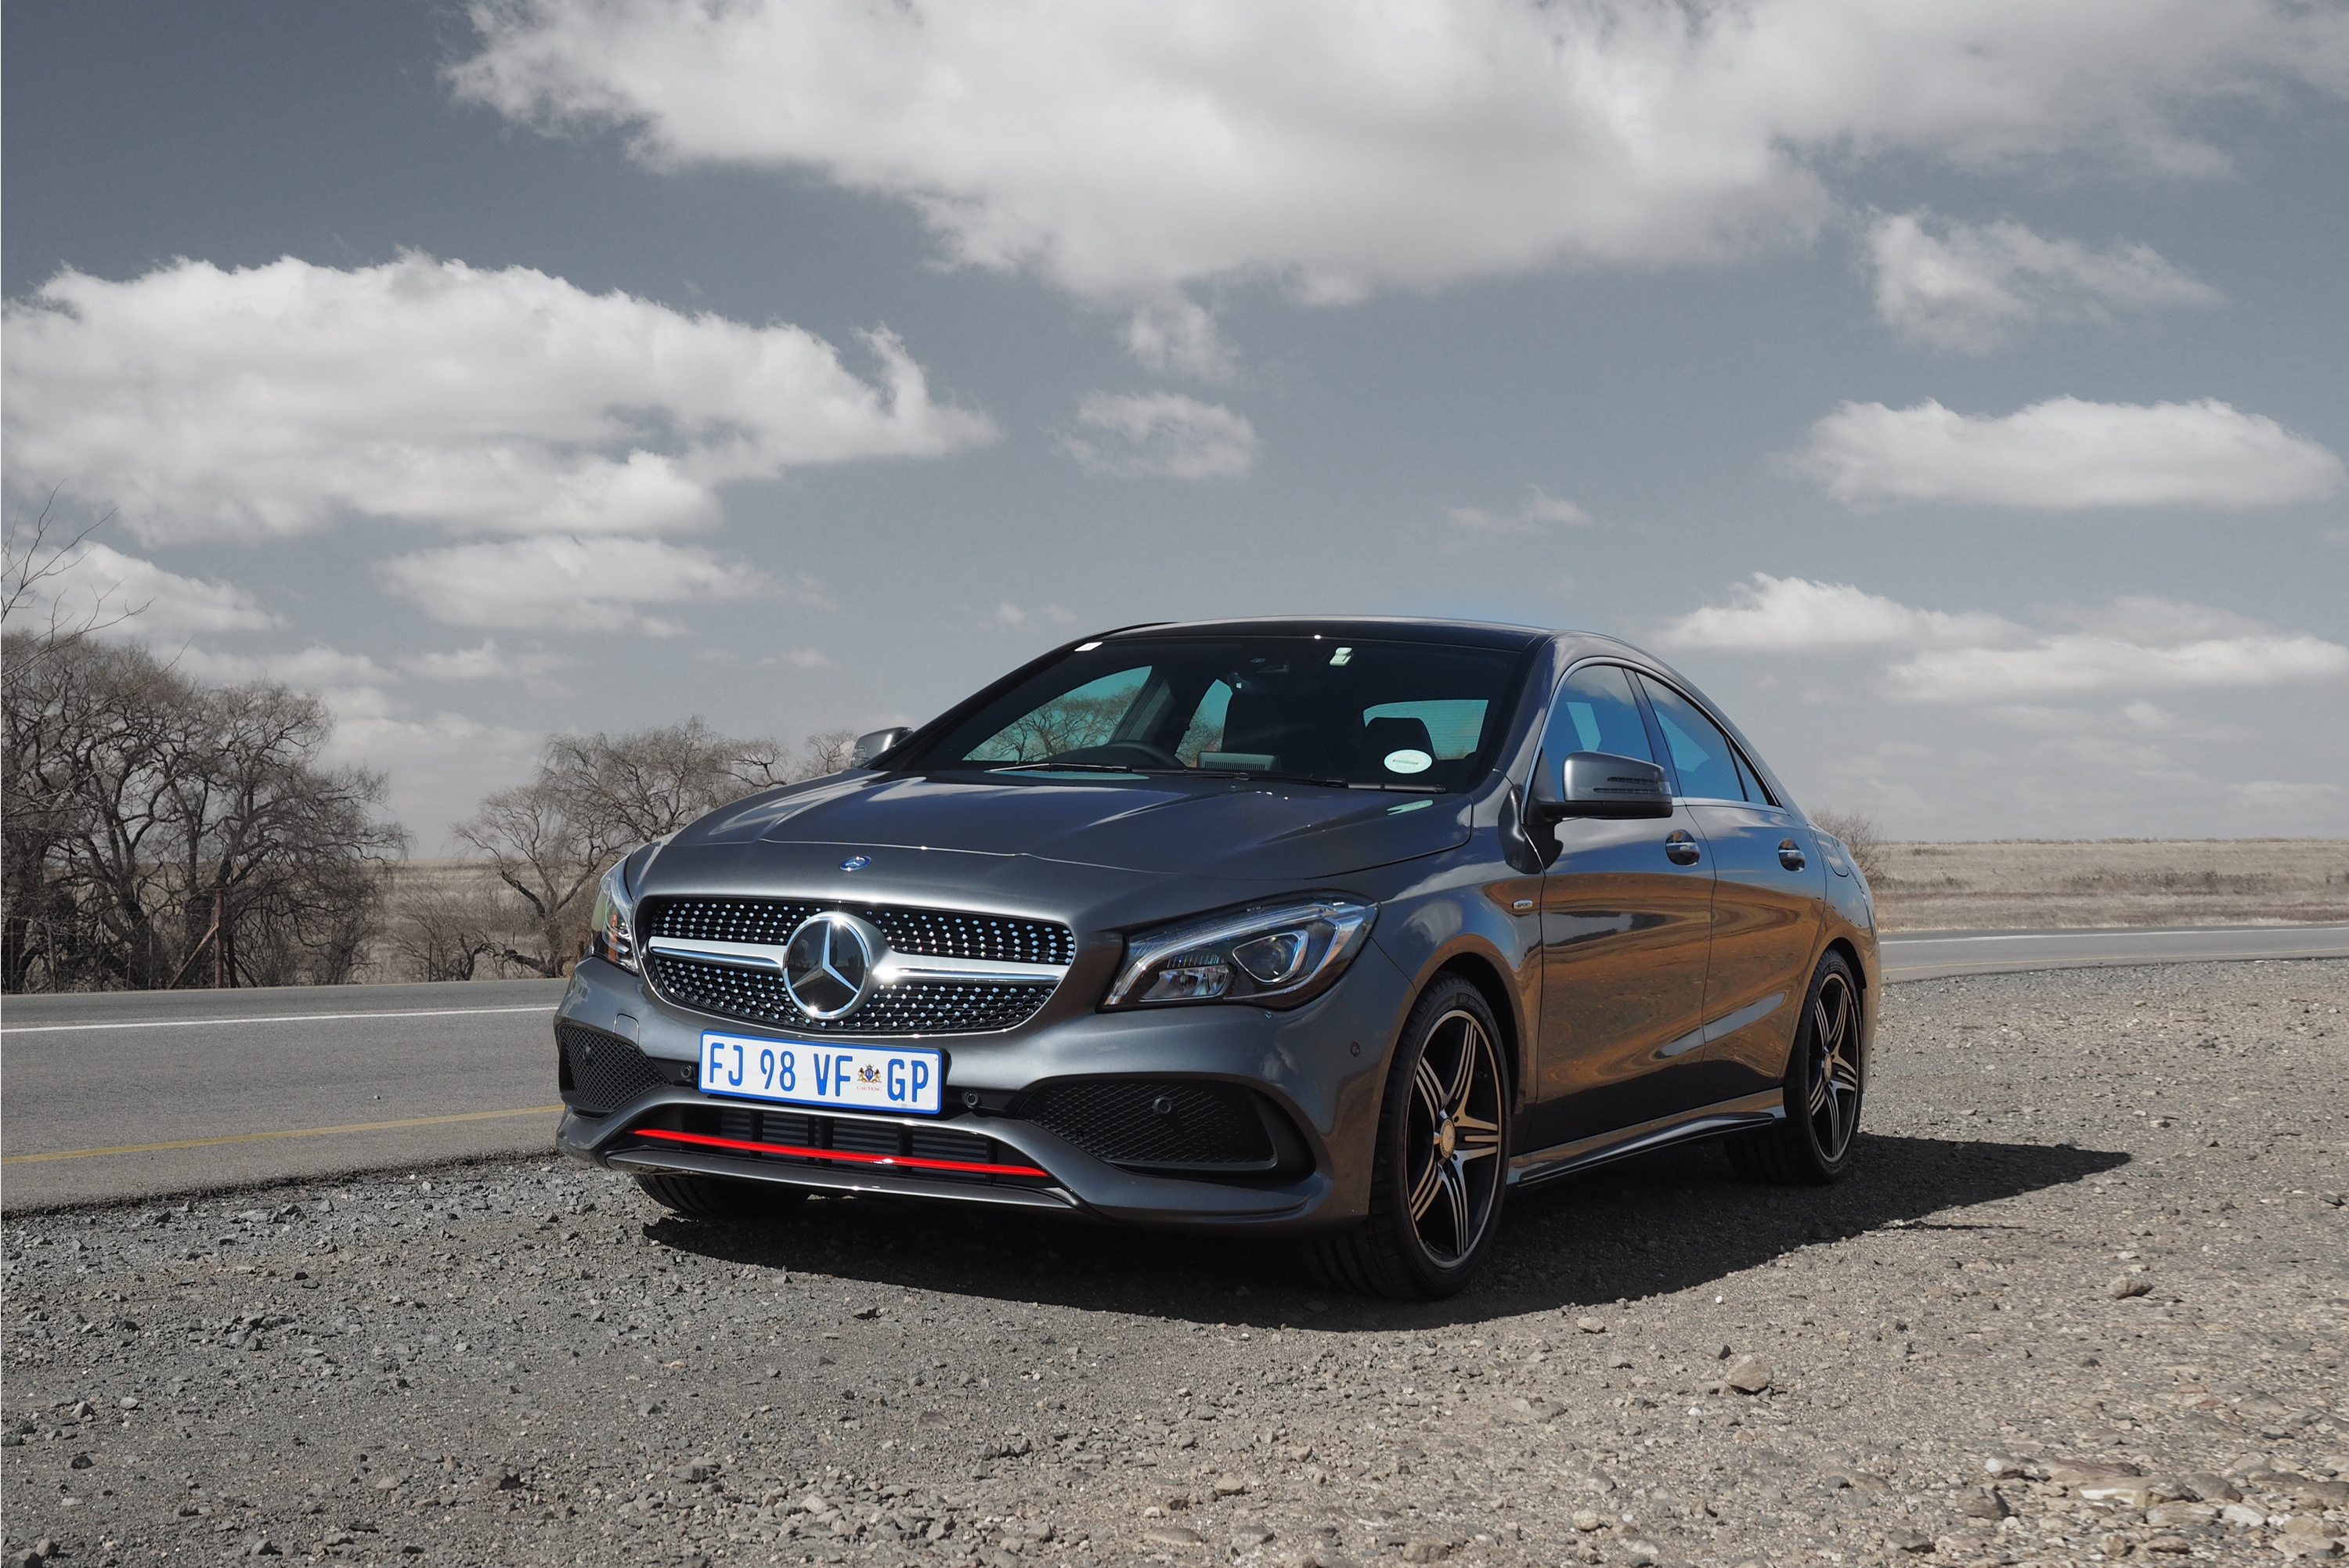 <p>Under constant pressure to turn the numbers, major manufacturers and their marketing departments often have to find innovative ways of positioning their new cars, and the new Mercedes-Benz CLA is no exception. </p>